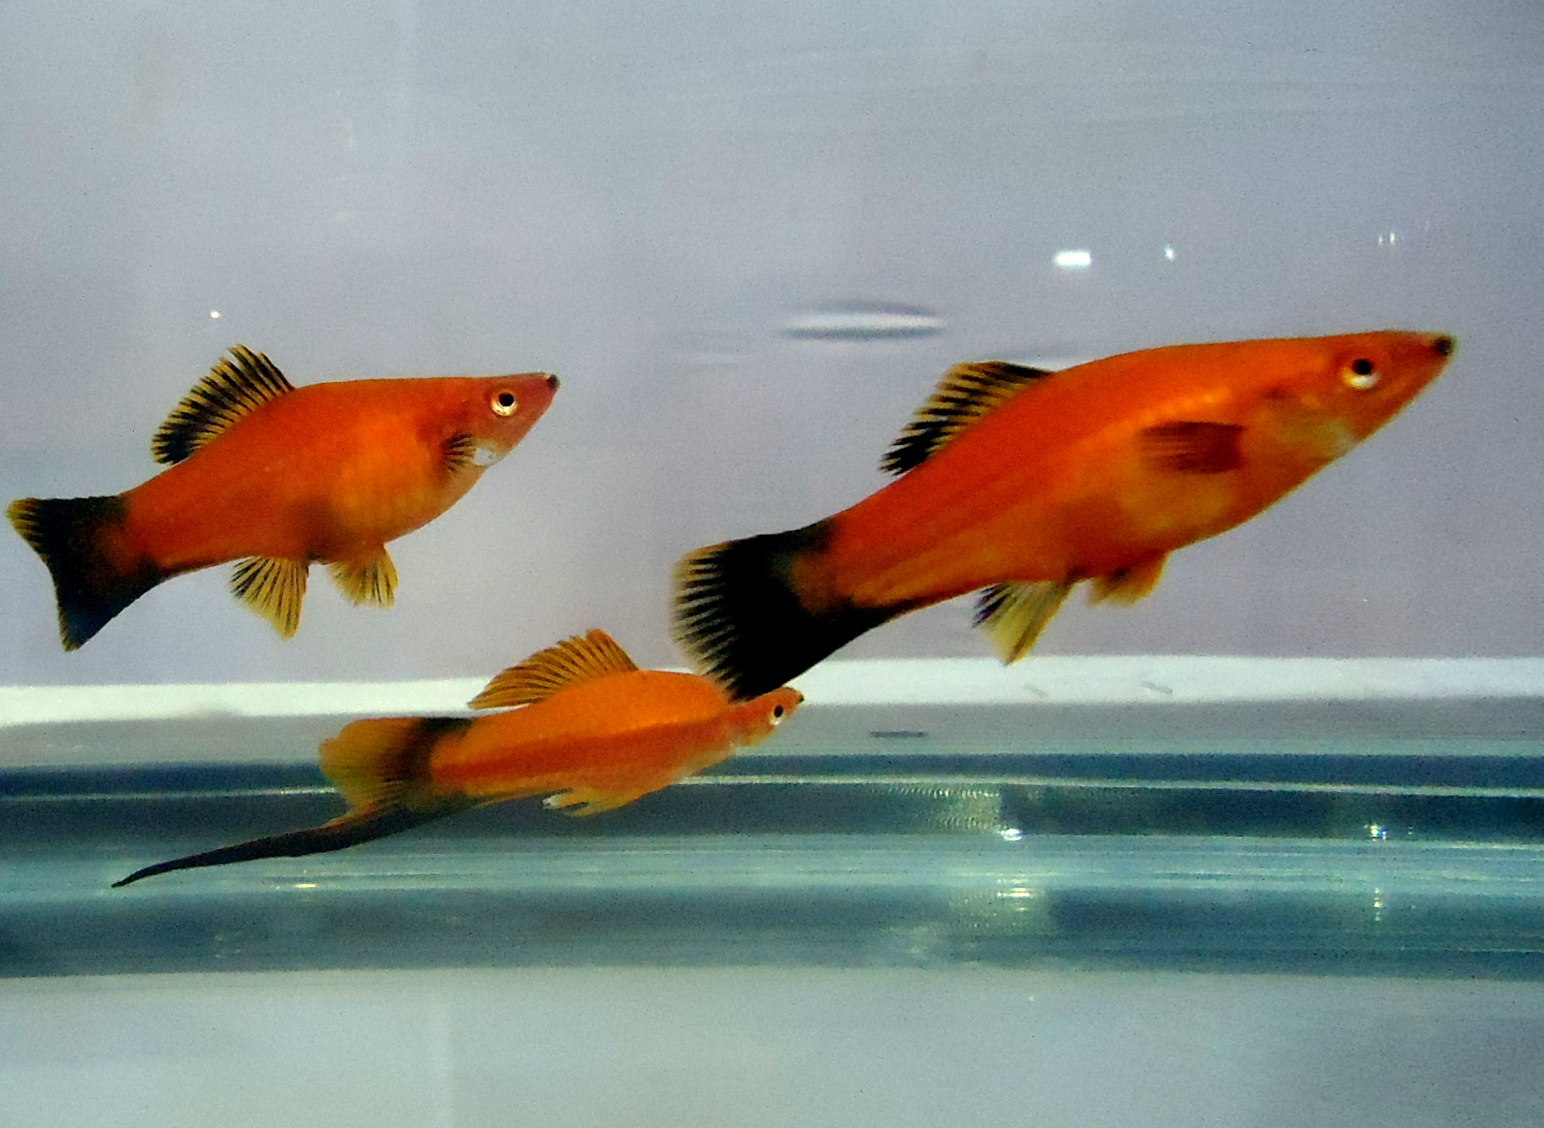 Aquarium fish wiki file aquarium fish wikipedia the for Fish aquarium fish aquarium